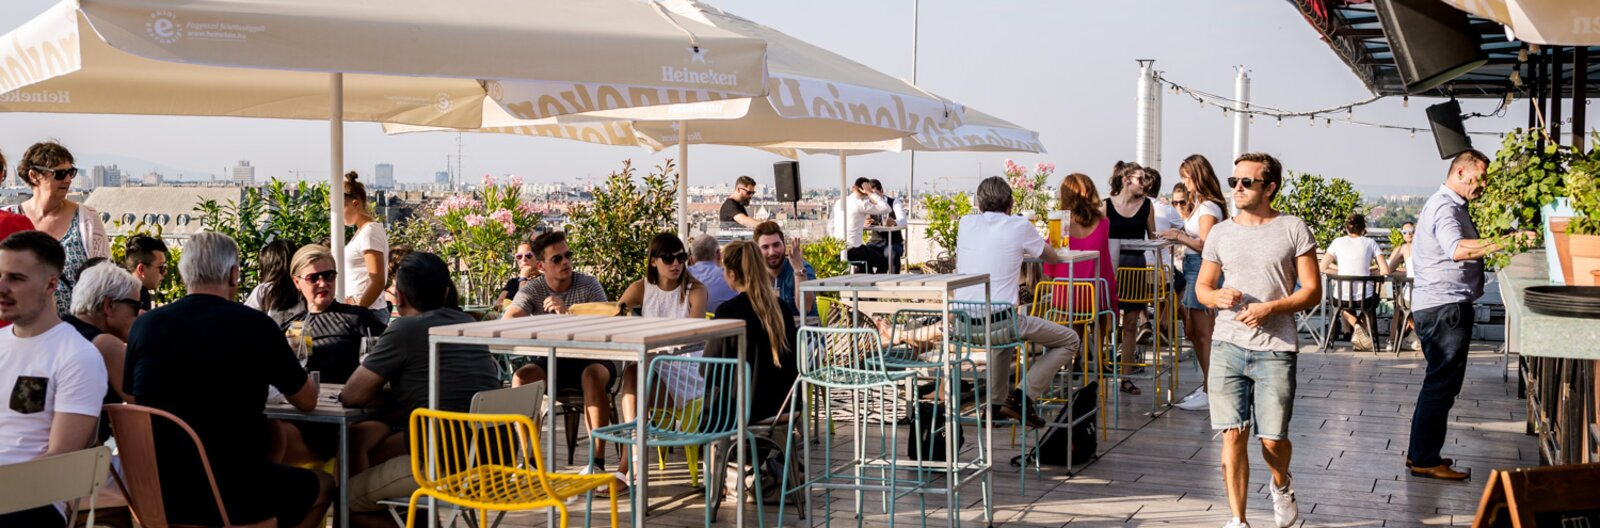 7 best rooftop bars now open in Budapest